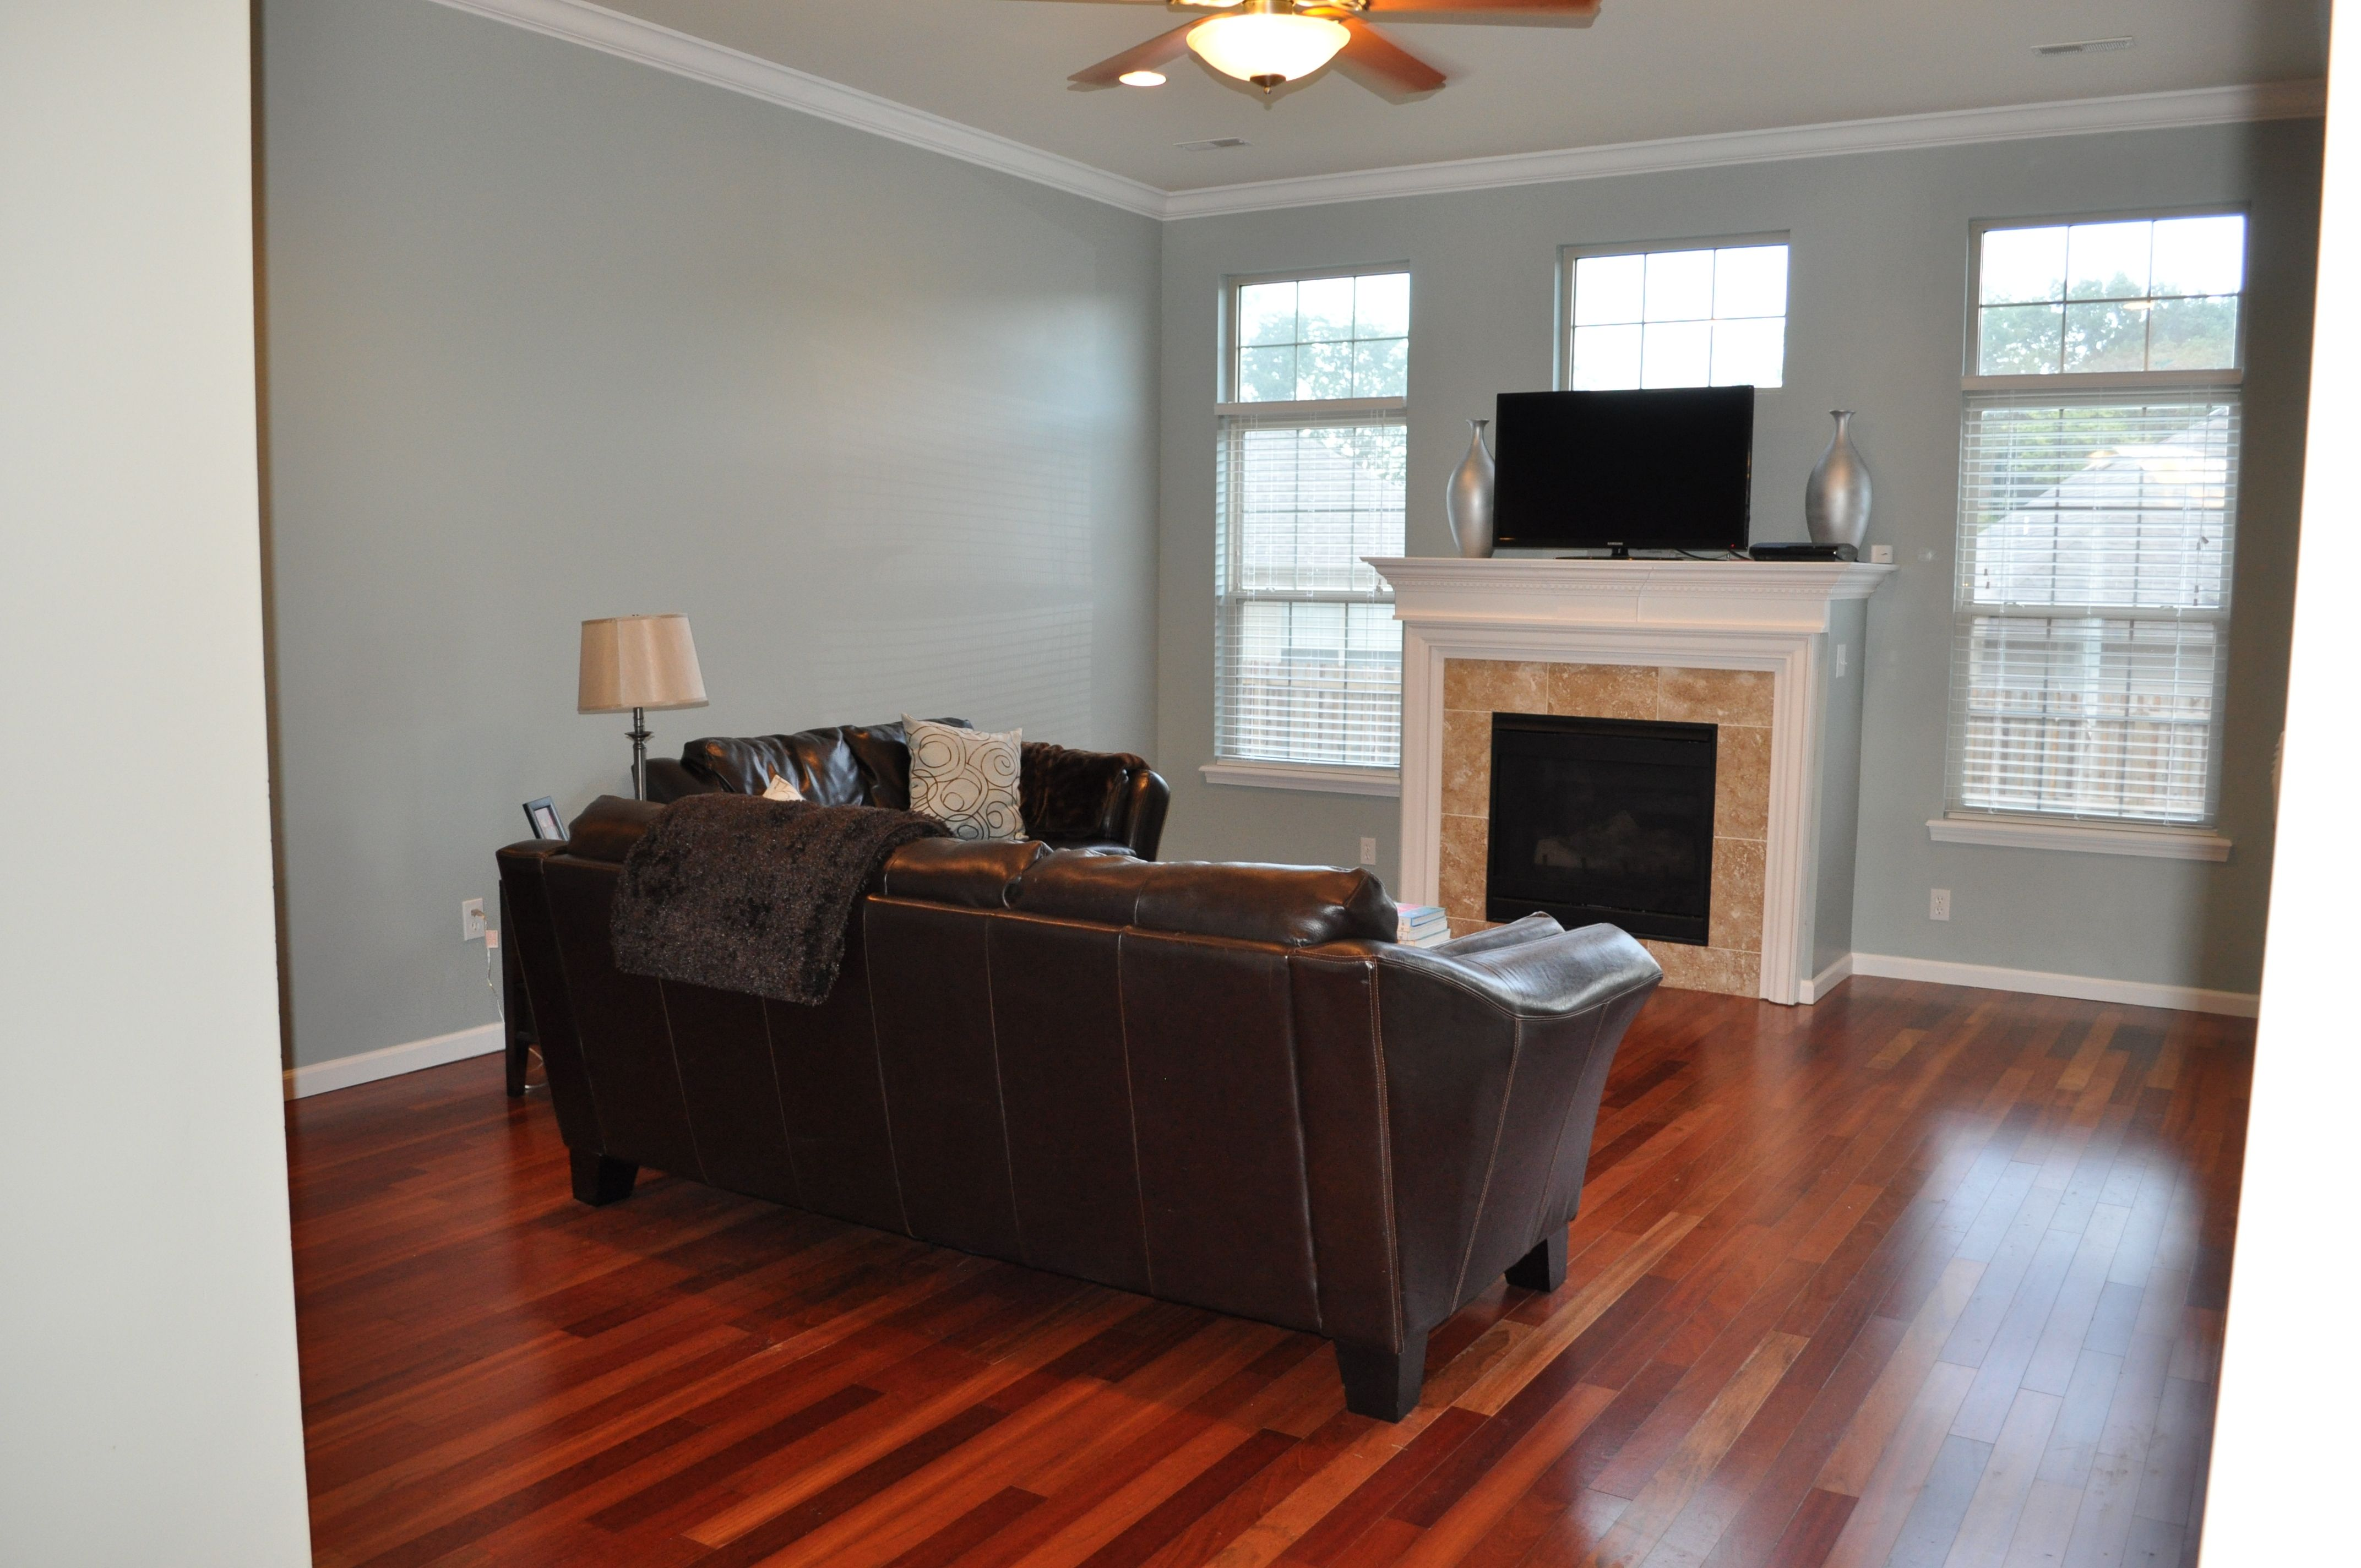 Our living room paint color sherwin williams silvermist living room pinterest living room for Sherwin williams paint ideas for living room